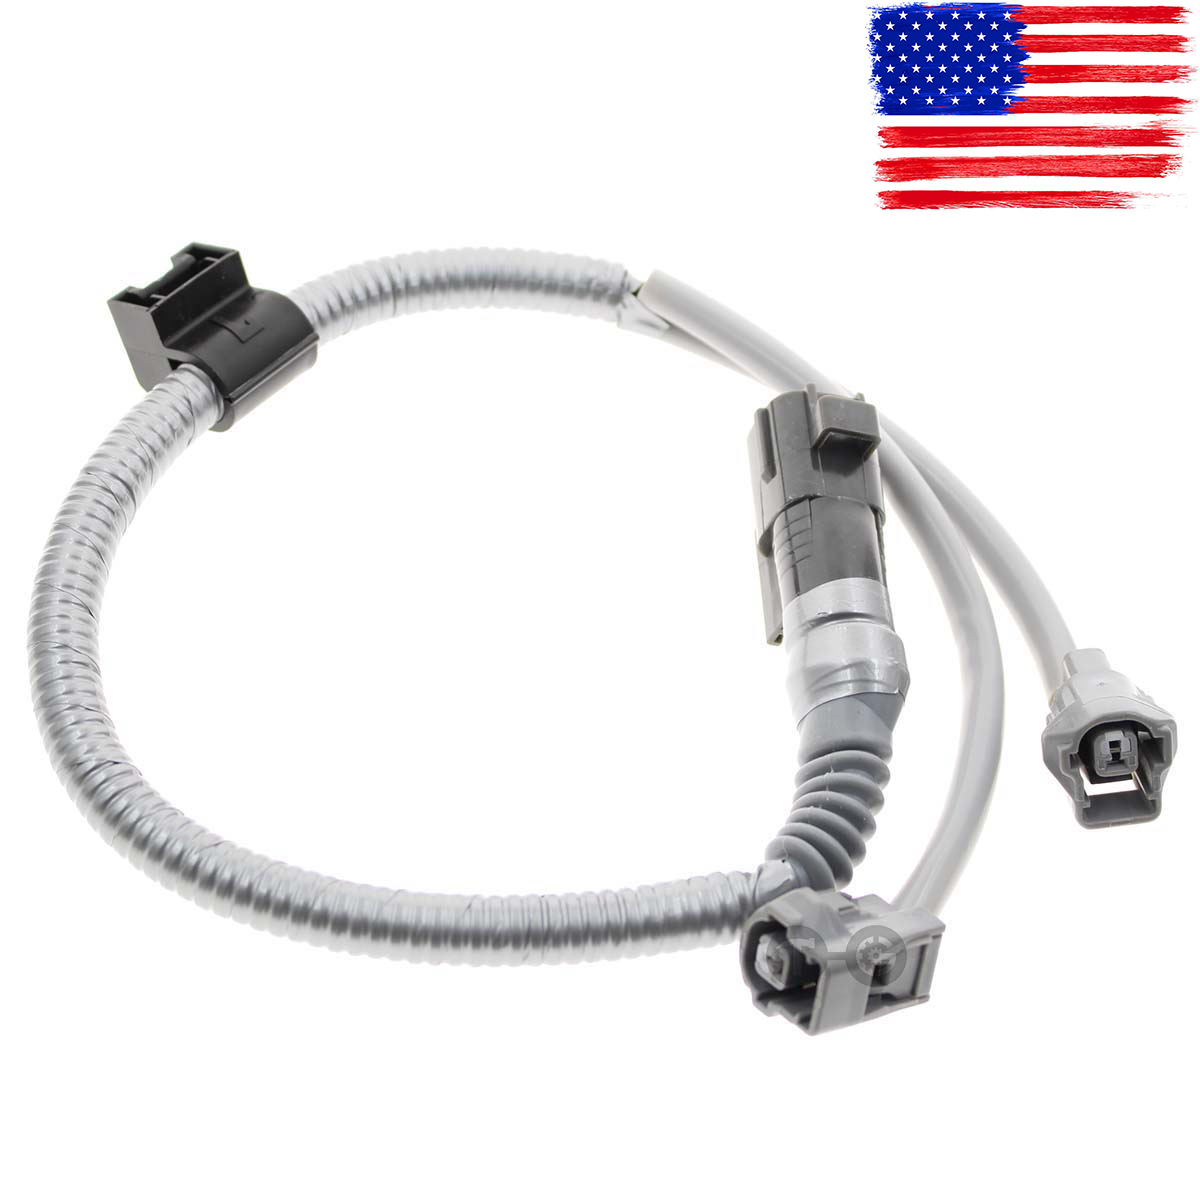 New Knock Sensor Connector Wire Loom Harness for Lexus RX300 ES300 ...